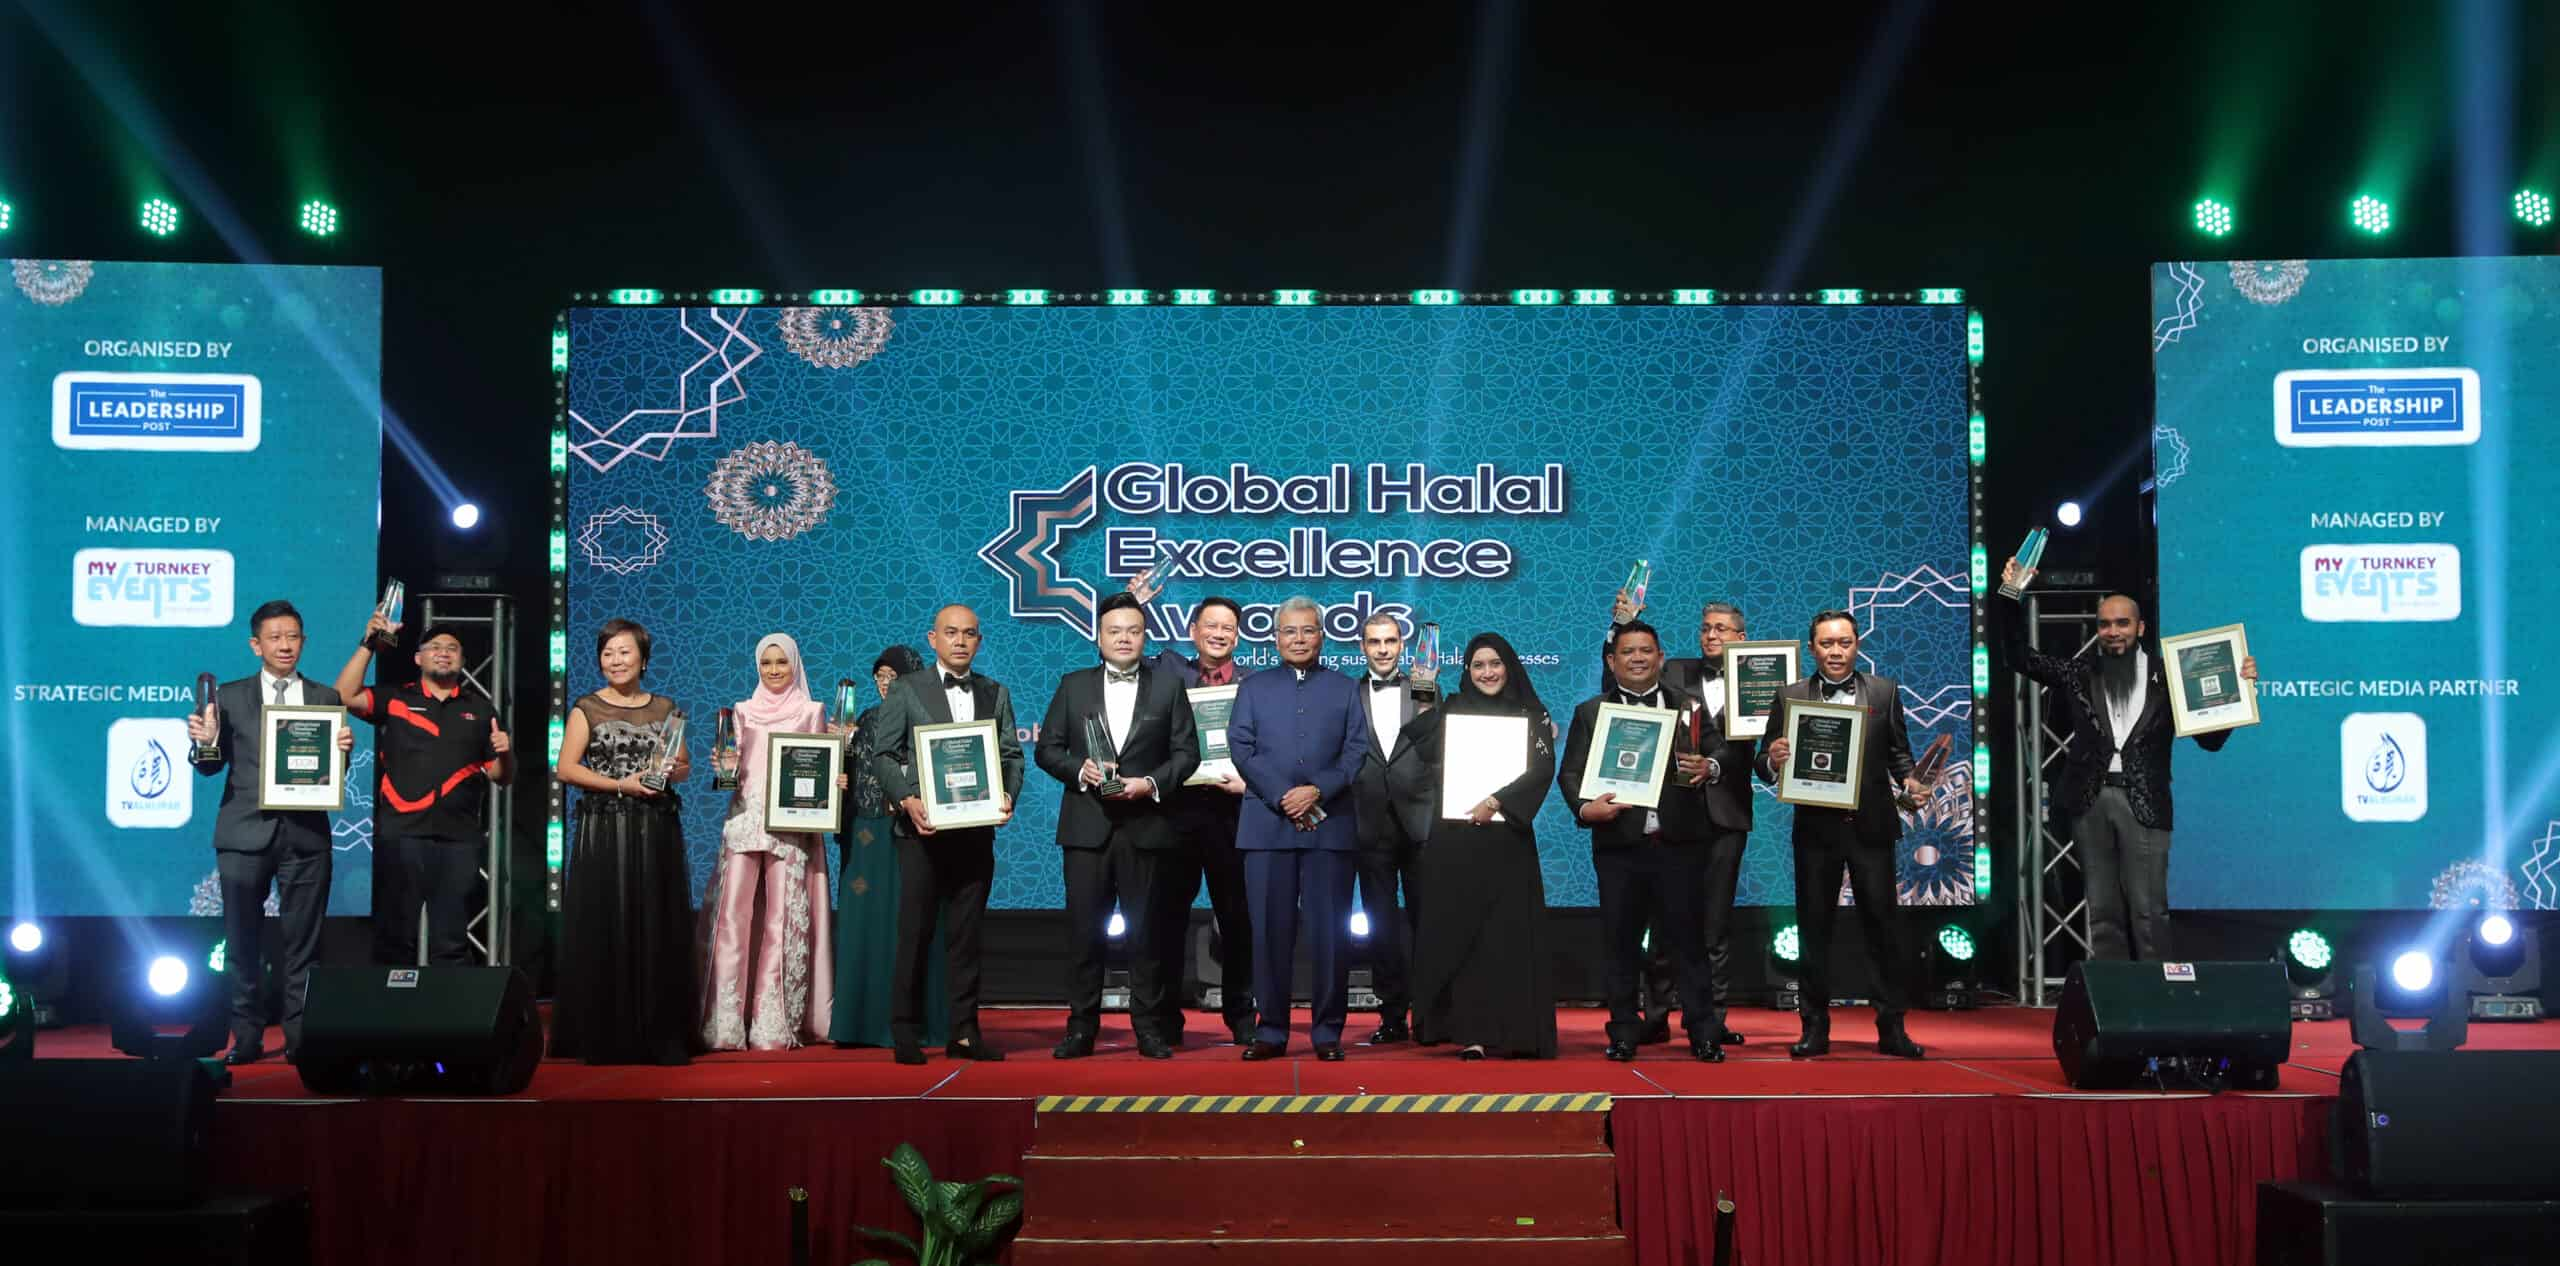 Pharmaniaga Manufacturing bags global halal excellence award